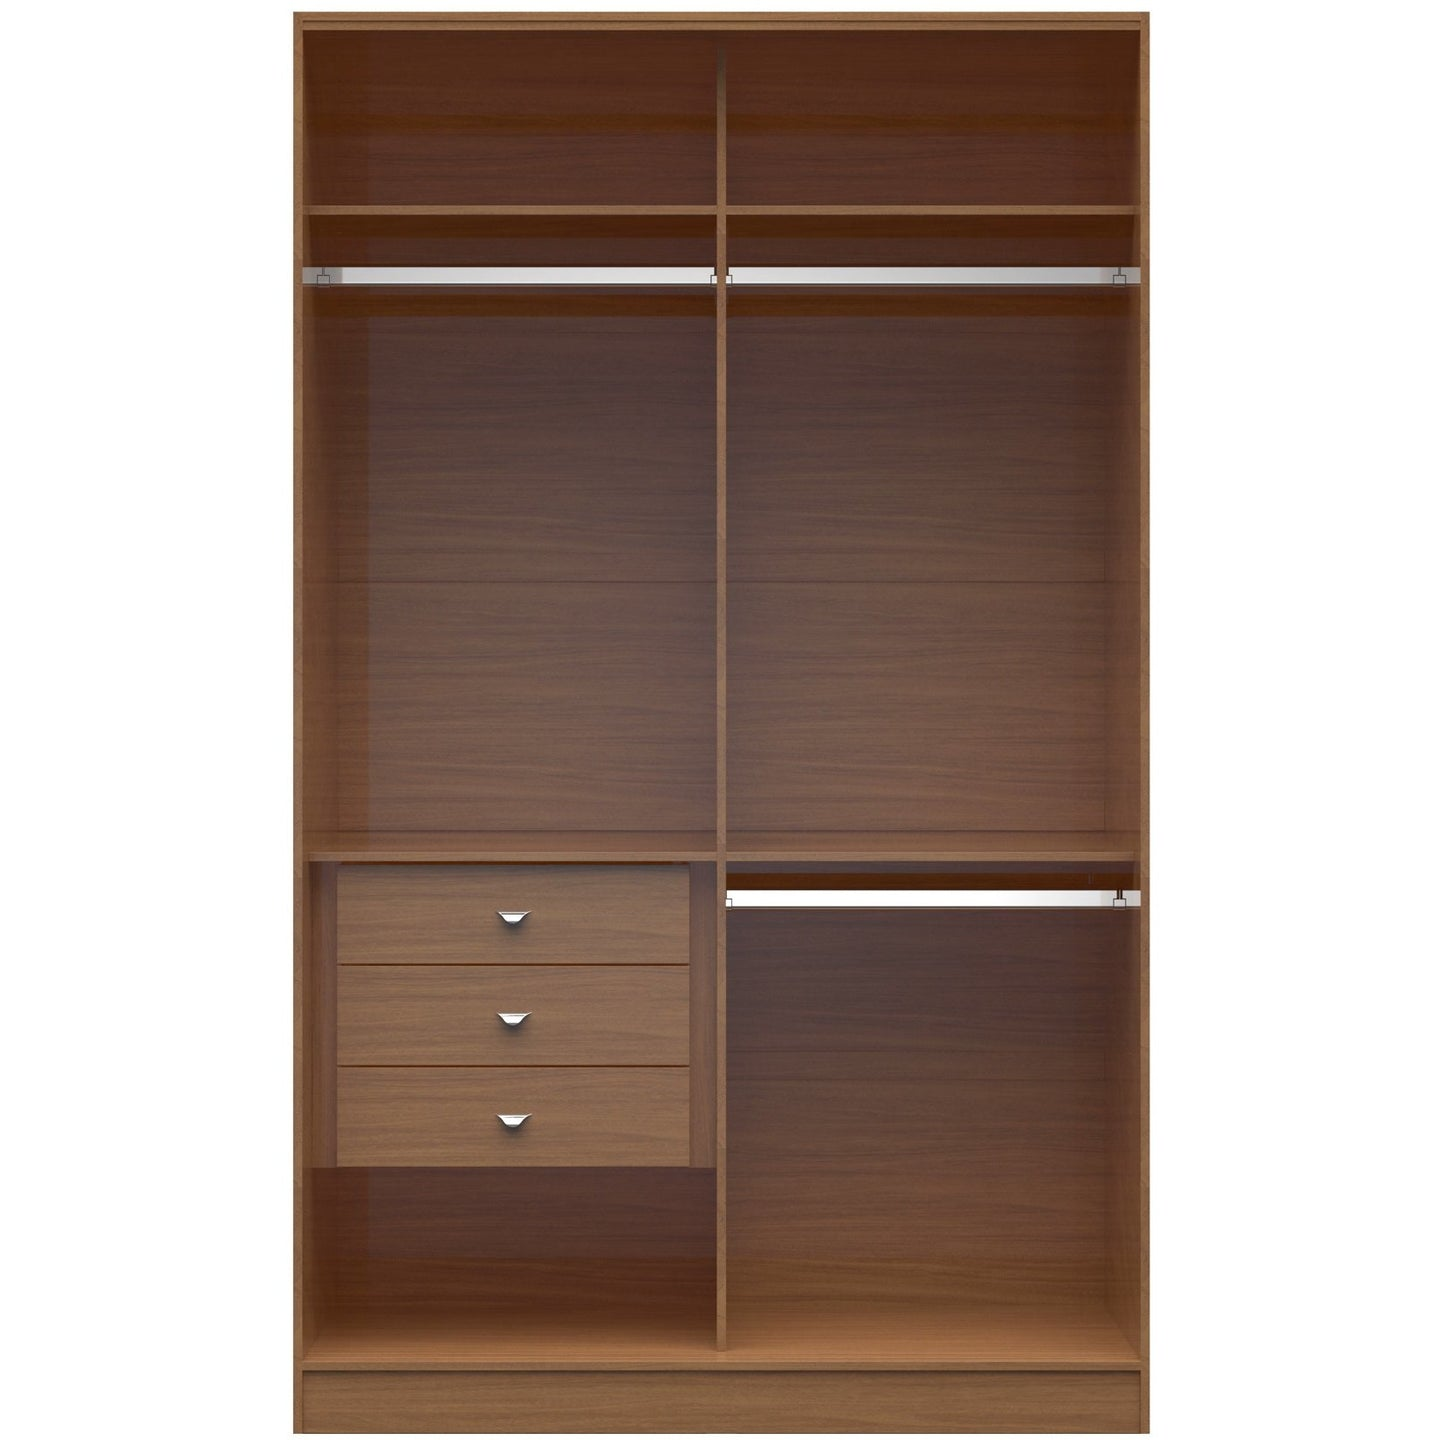 Manhattan Comfort Chelsea 1.0 - 54.33 inch Wide Double Basic Wardrobe with 3 Drawers in Maple Cream-Minimal & Modern